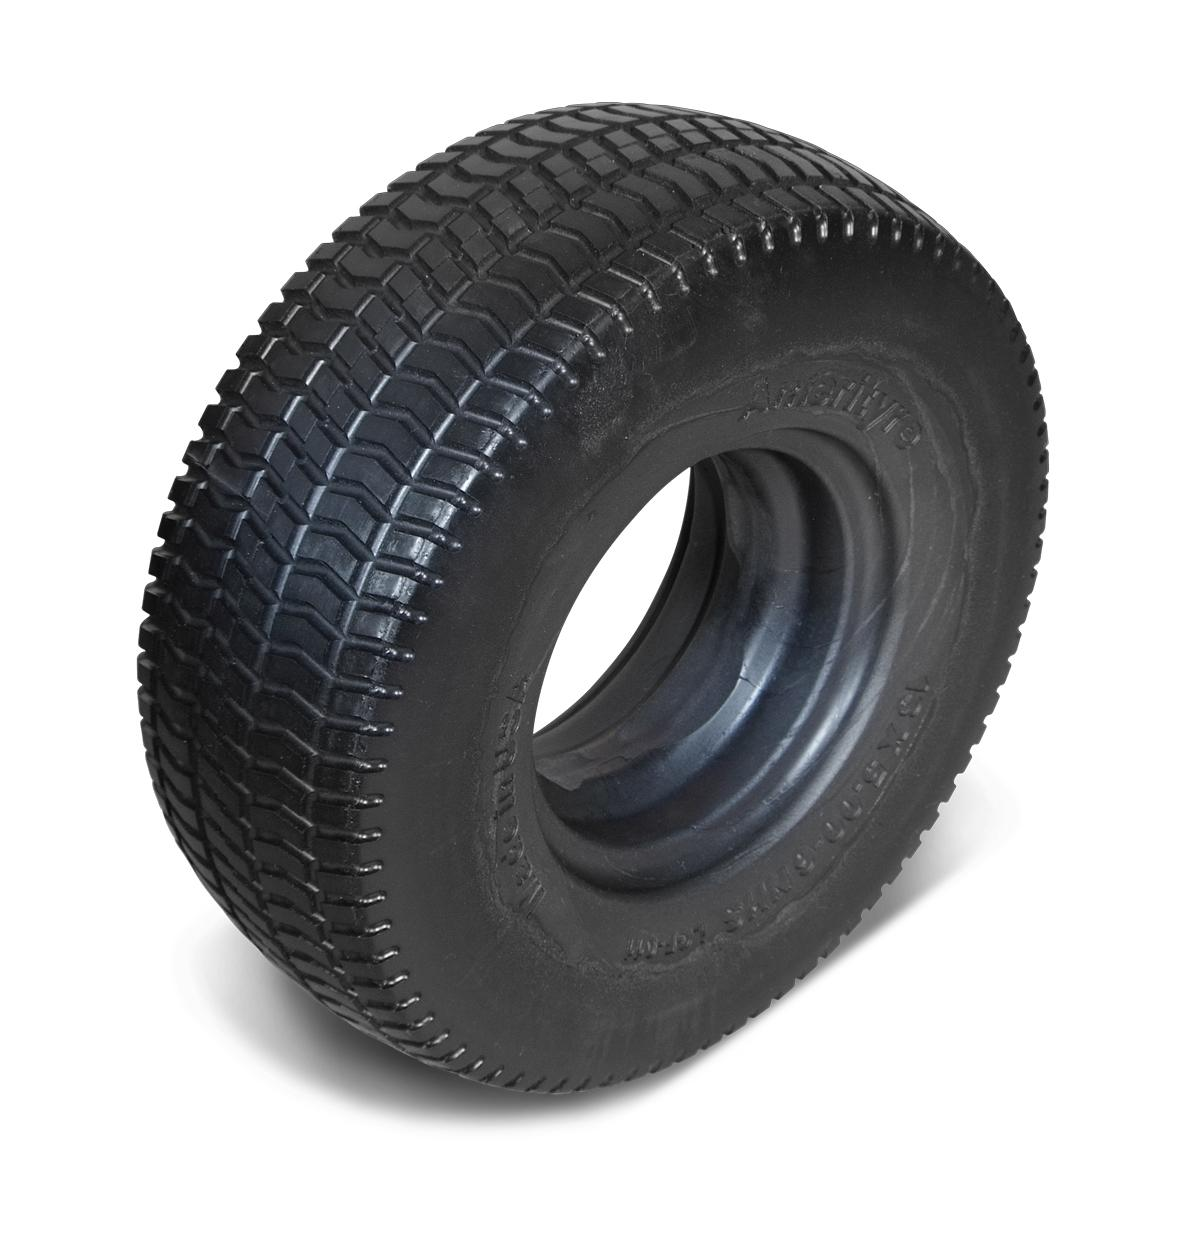 Amerityre Solid Mower Turf 13-5.00-6 Yard - Lawn Tire